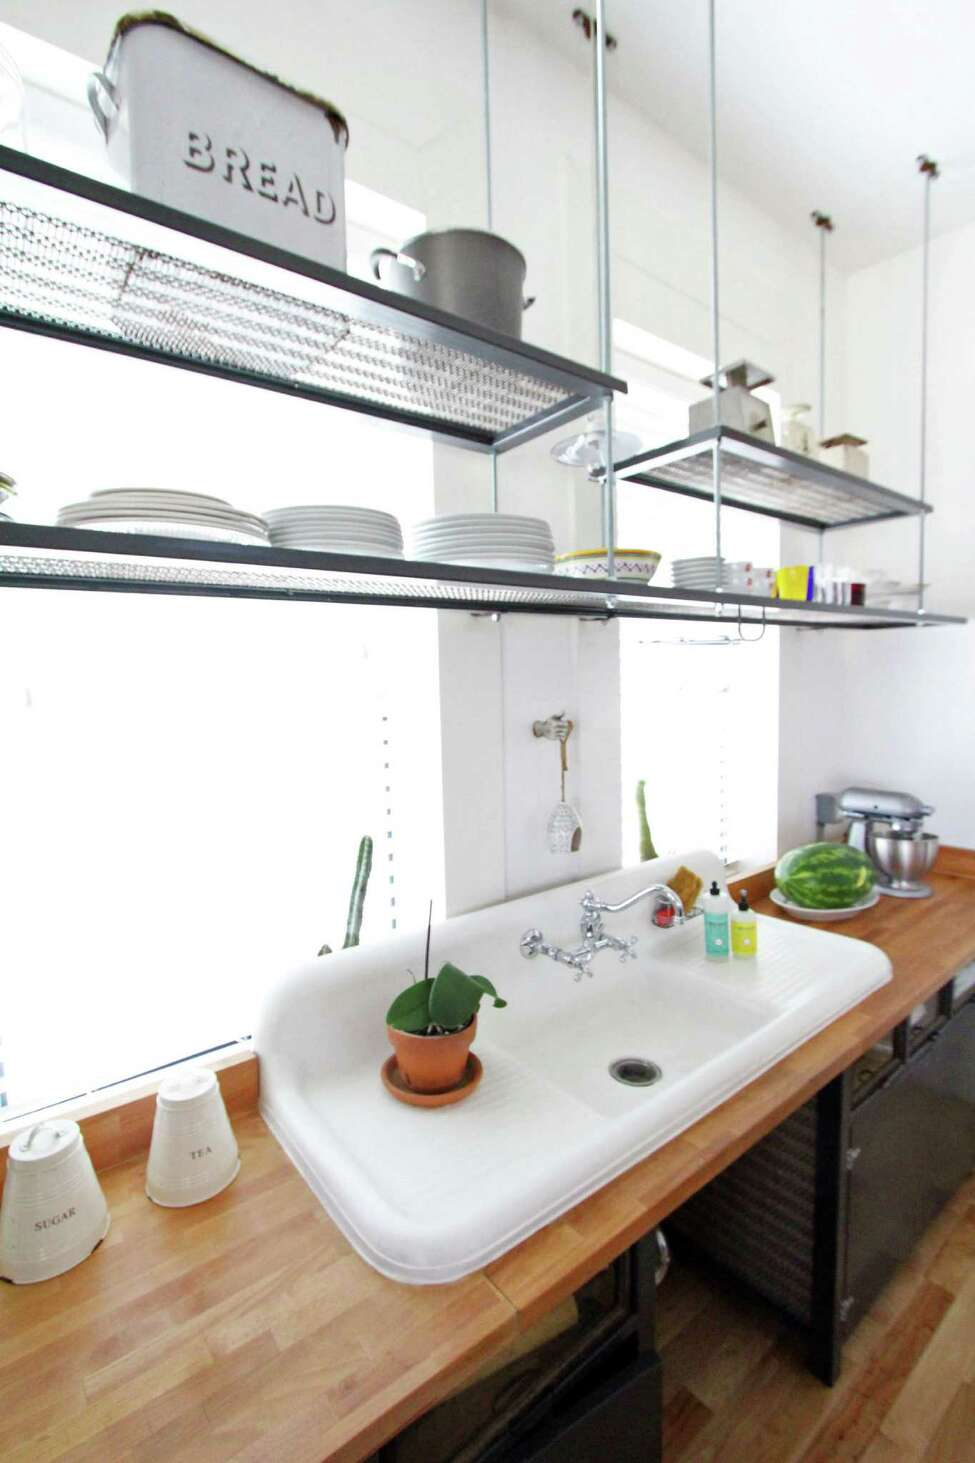 Suspended metal shelves hang above the double drainboard sink, which Vincent Valdez and Adriana Corral bought at Architectural Antiques.